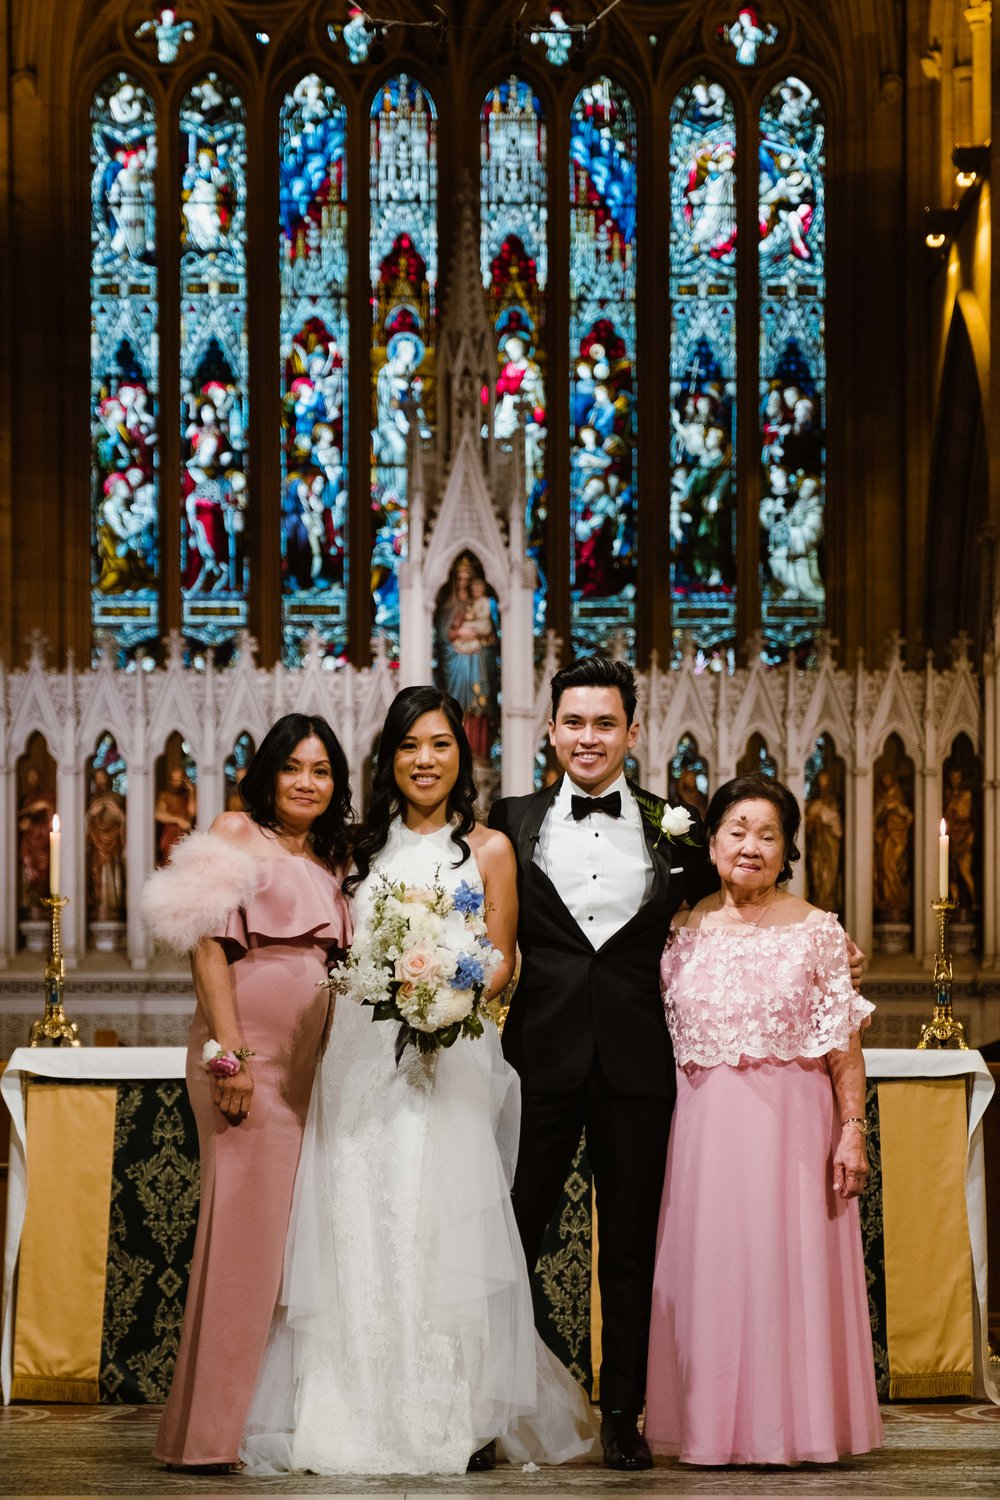 Maria and Gerald Sydney wedding by Milton Gan Photography 21.jpg